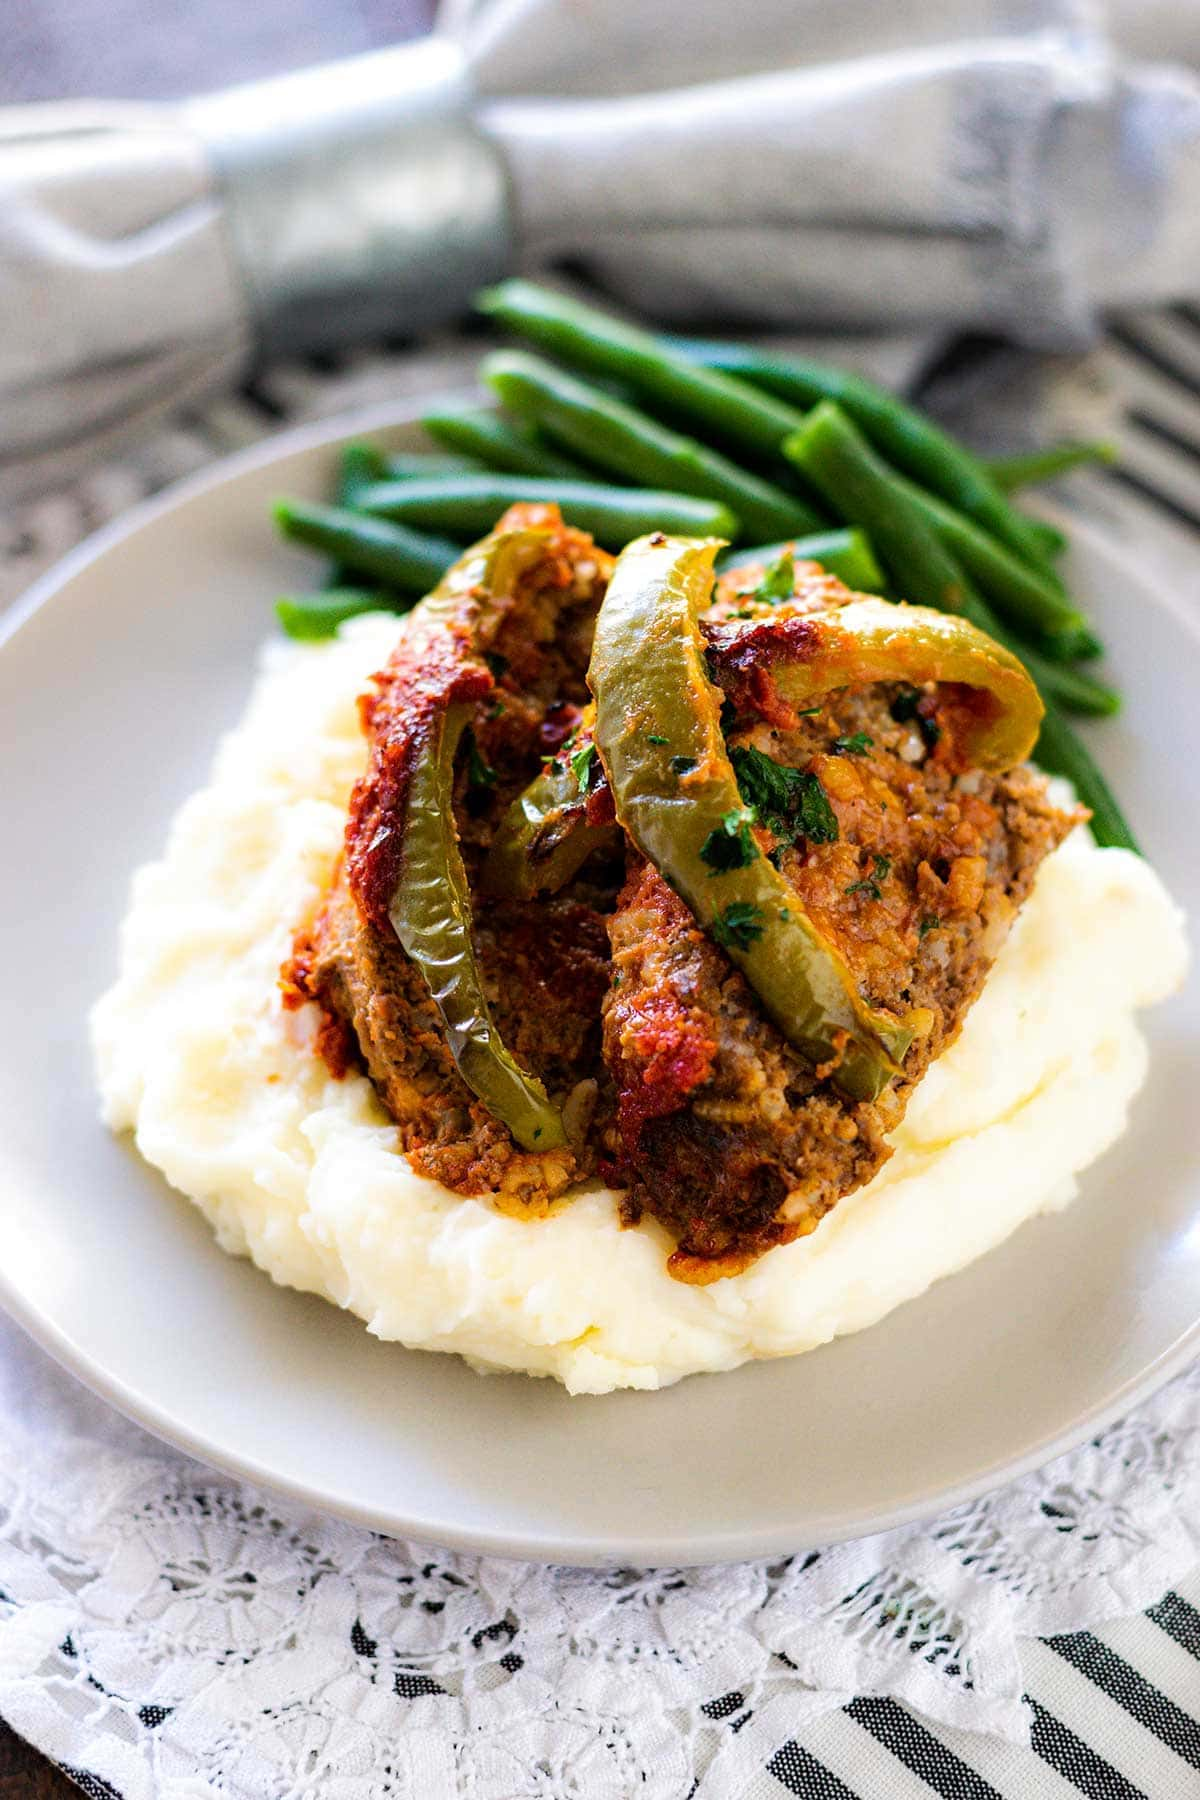 Meatloaf with all the flavors of stuffed peppers on top of mashed potatoes and a side of green beans.